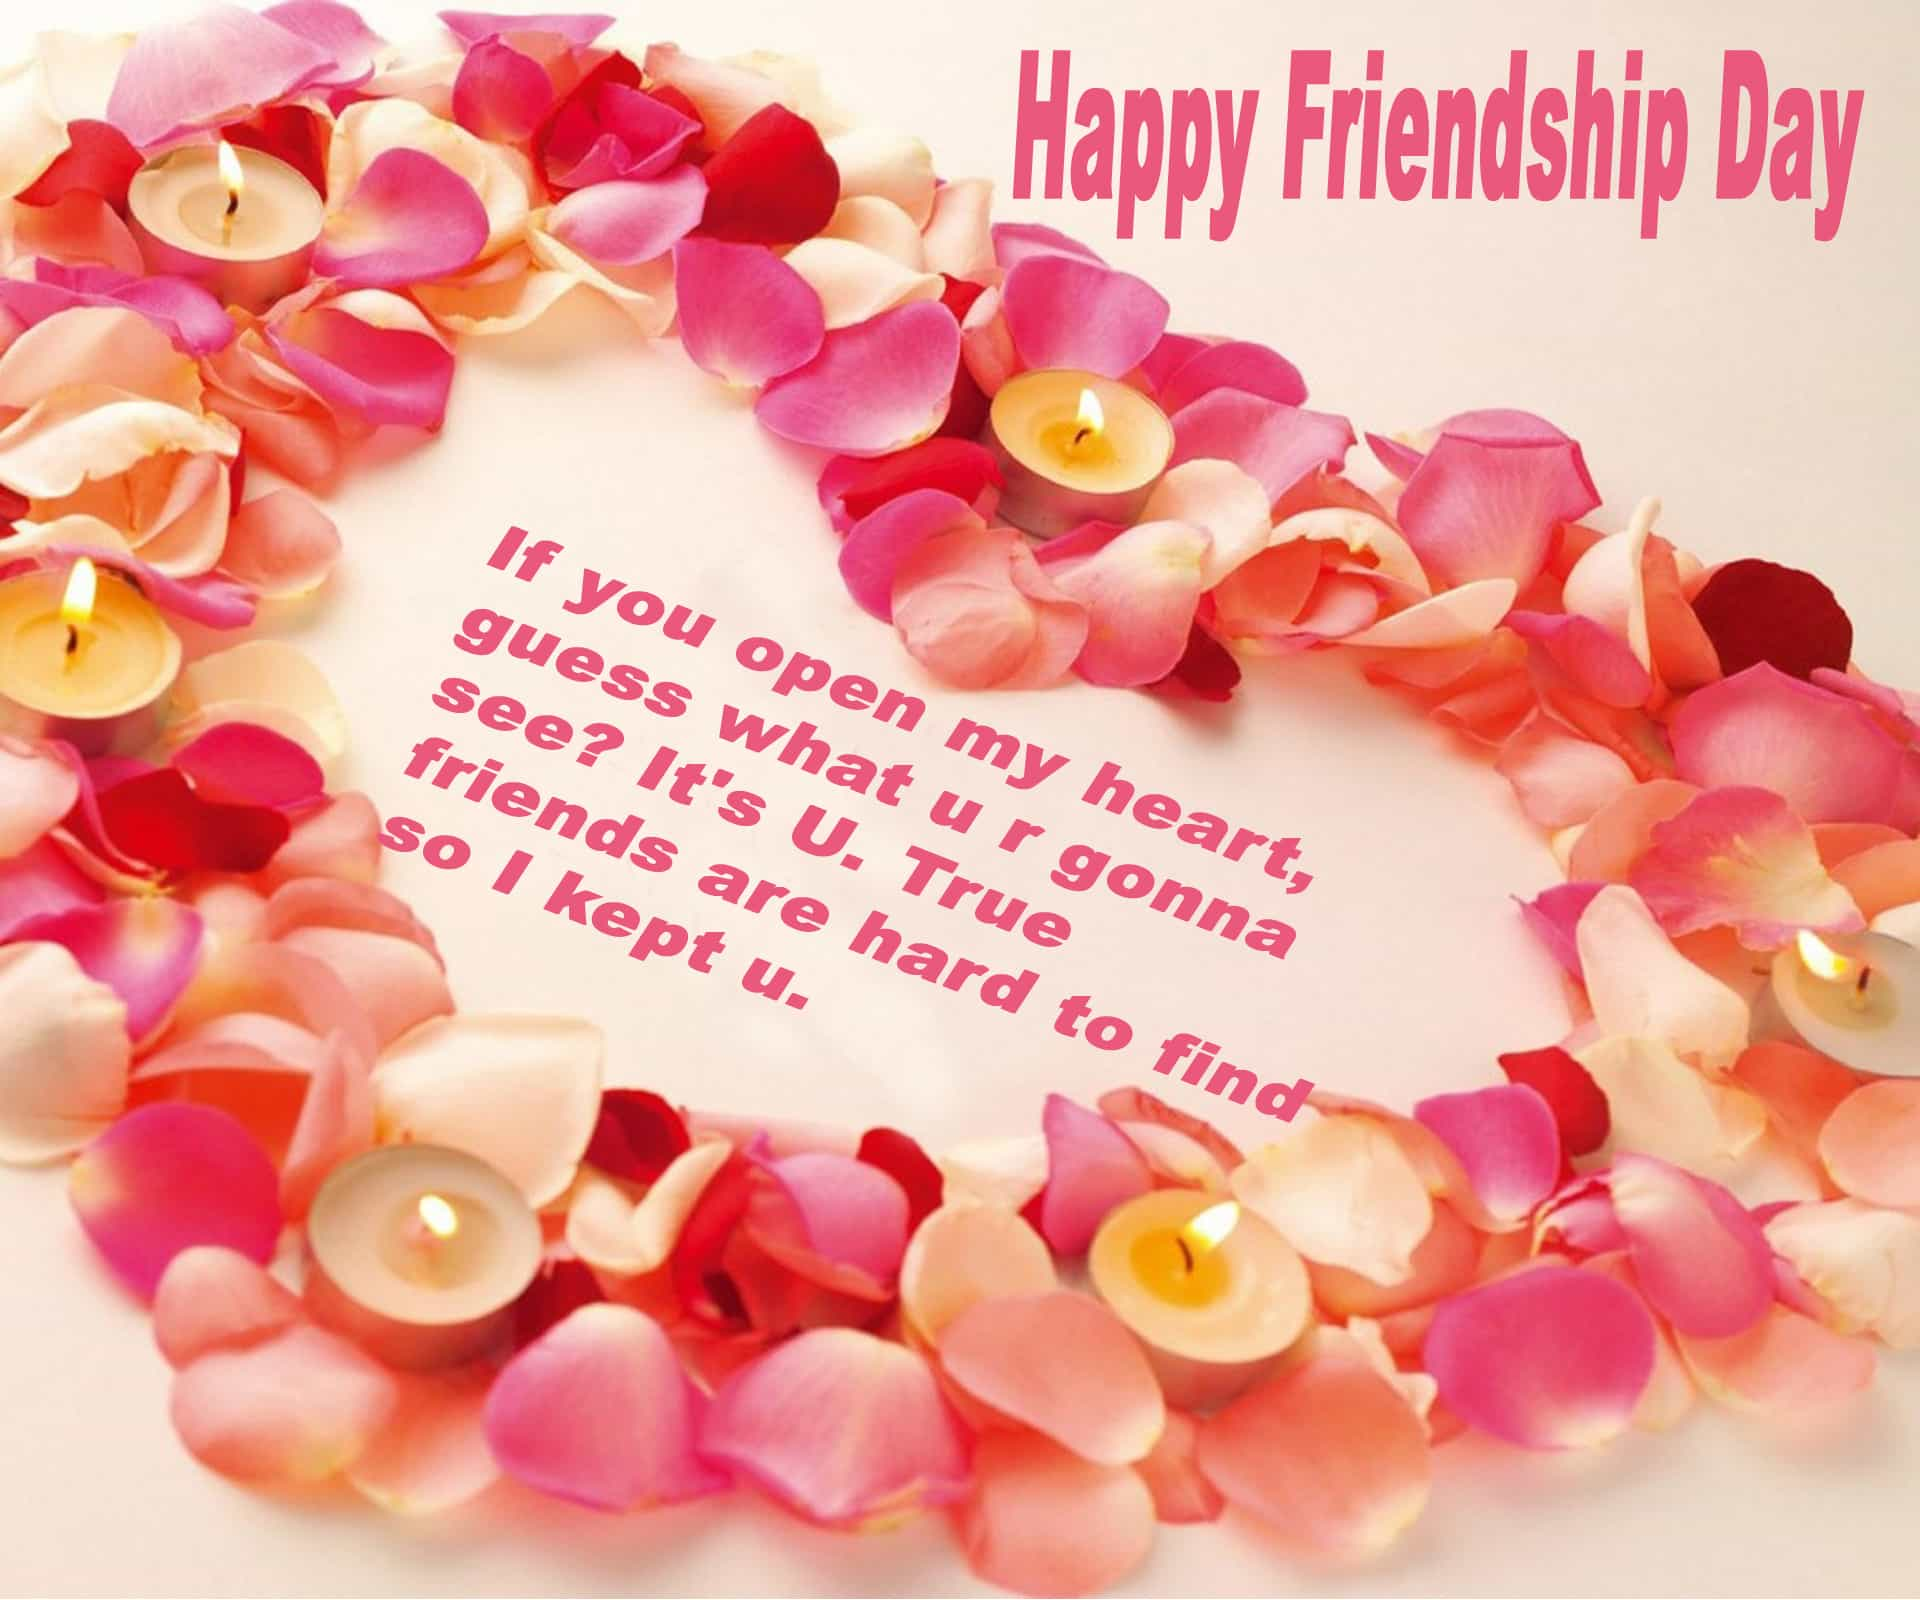 Best Friends Day Wallpapers Wallpaper Cave